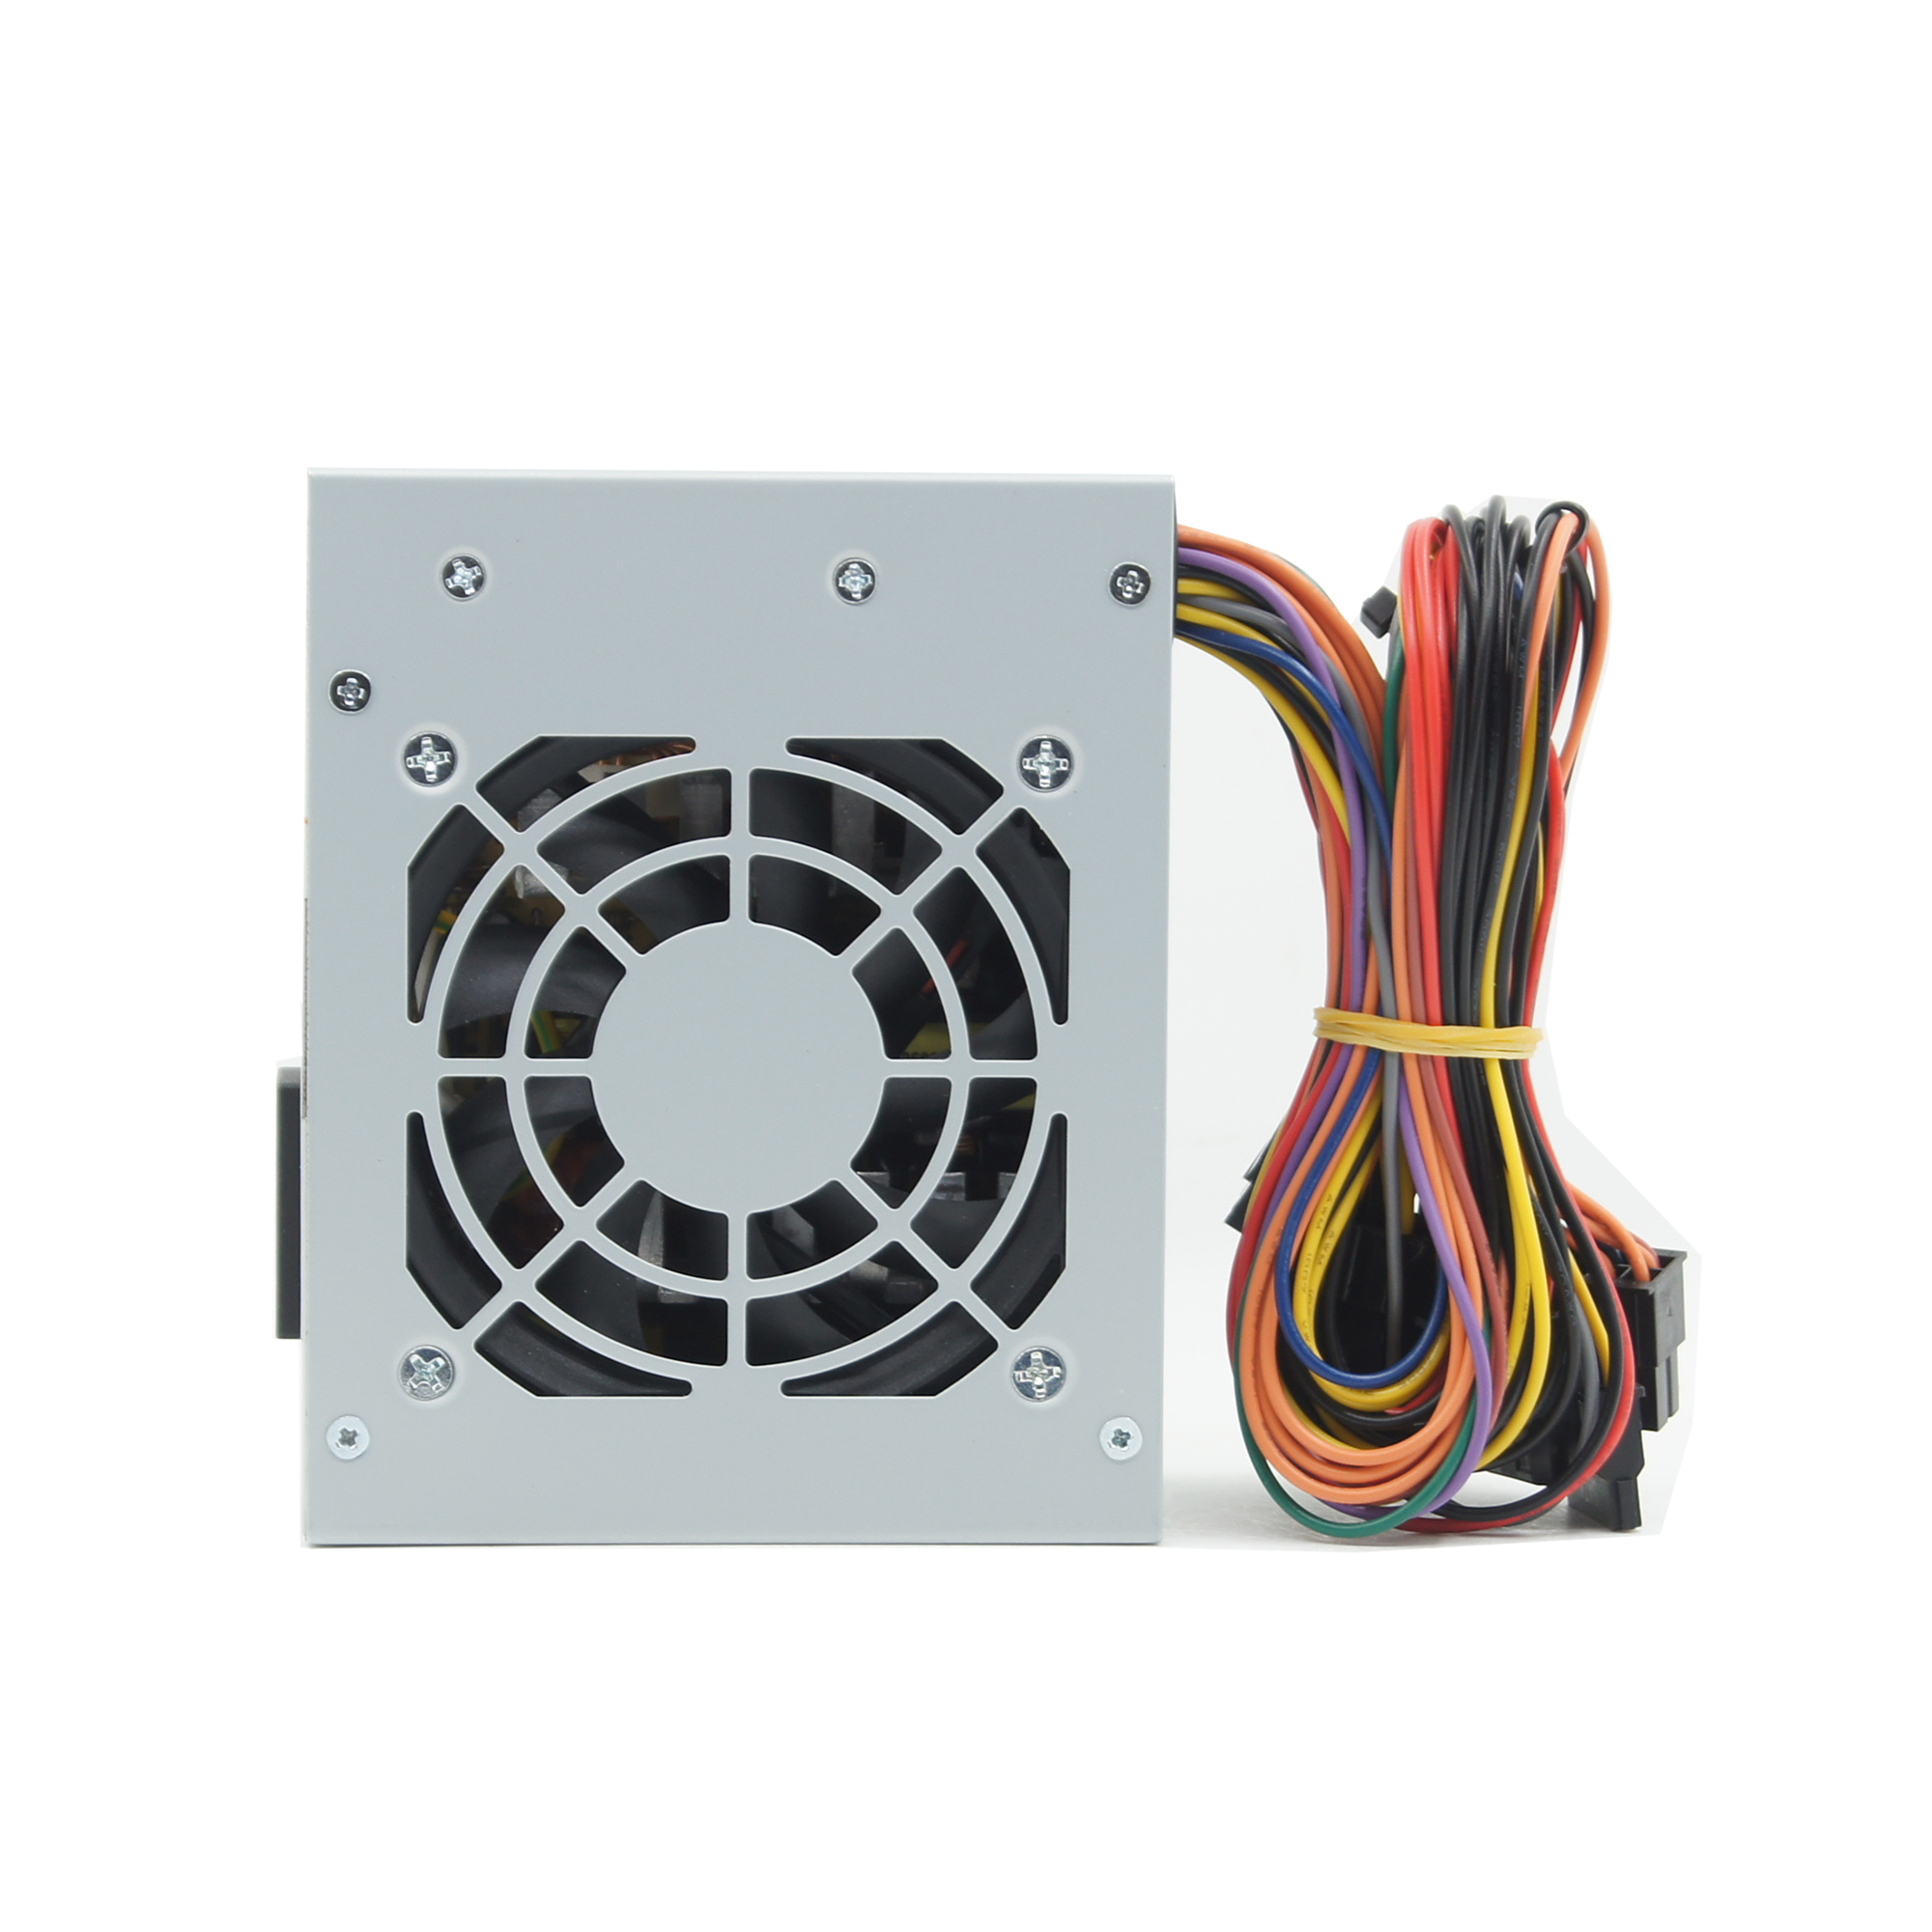 SFX PC power supply 200w micro psu for itx mini desktop computer